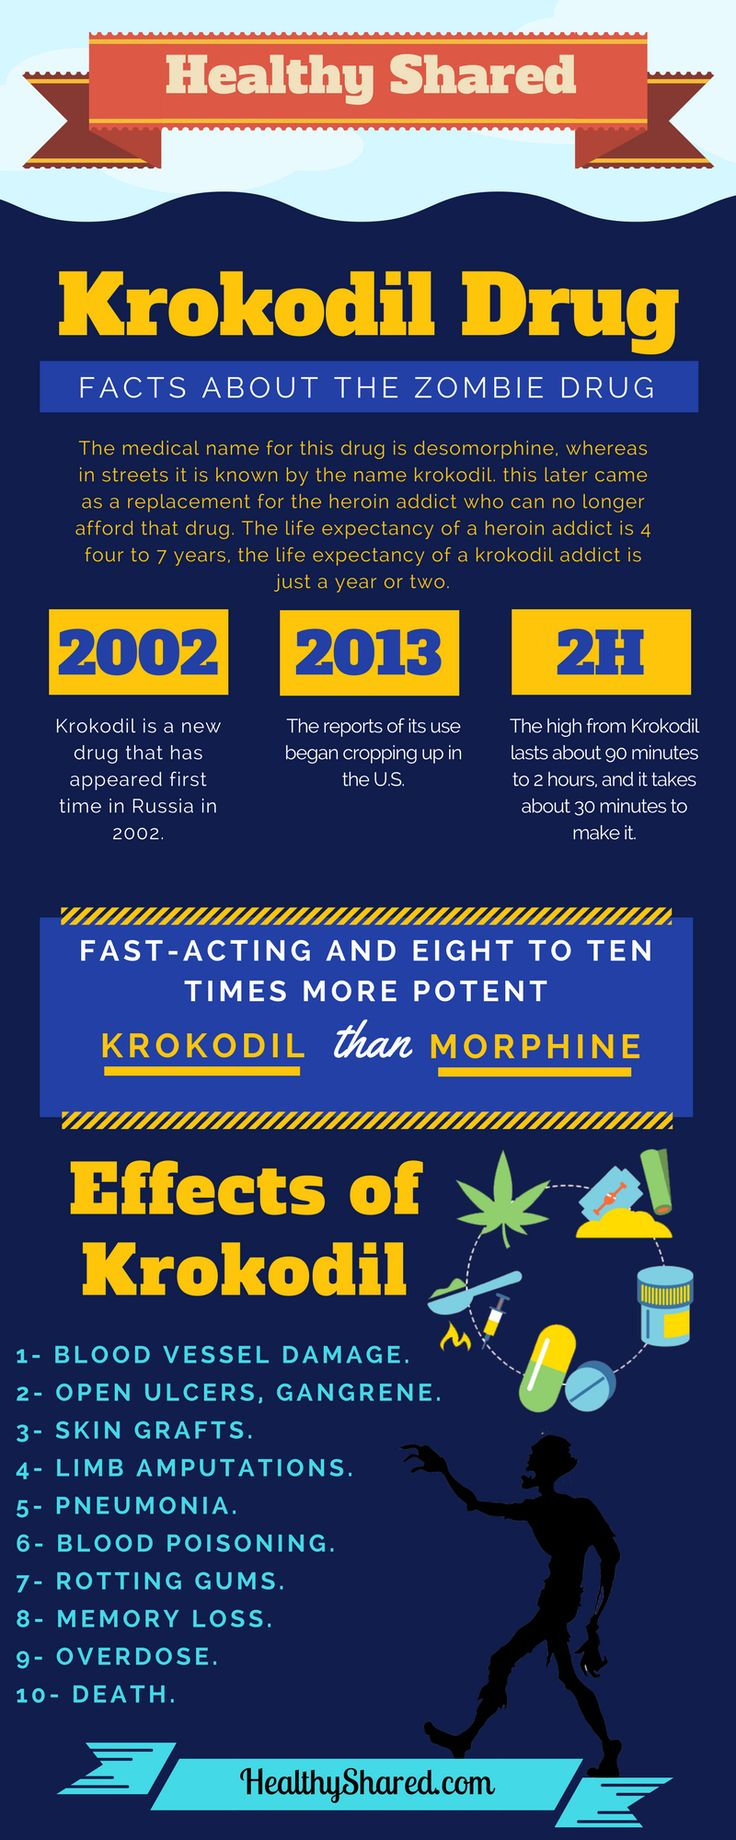 Ever since 2002, a new drug has hit the market, and it has brought in front some new challenges. Named krokodil drug, desomorphine or the crocodile drug, this is known to be one of the most damaging drugs in the intire world.At its core, the krokodil drug is a derivative of codeine. It shares a...